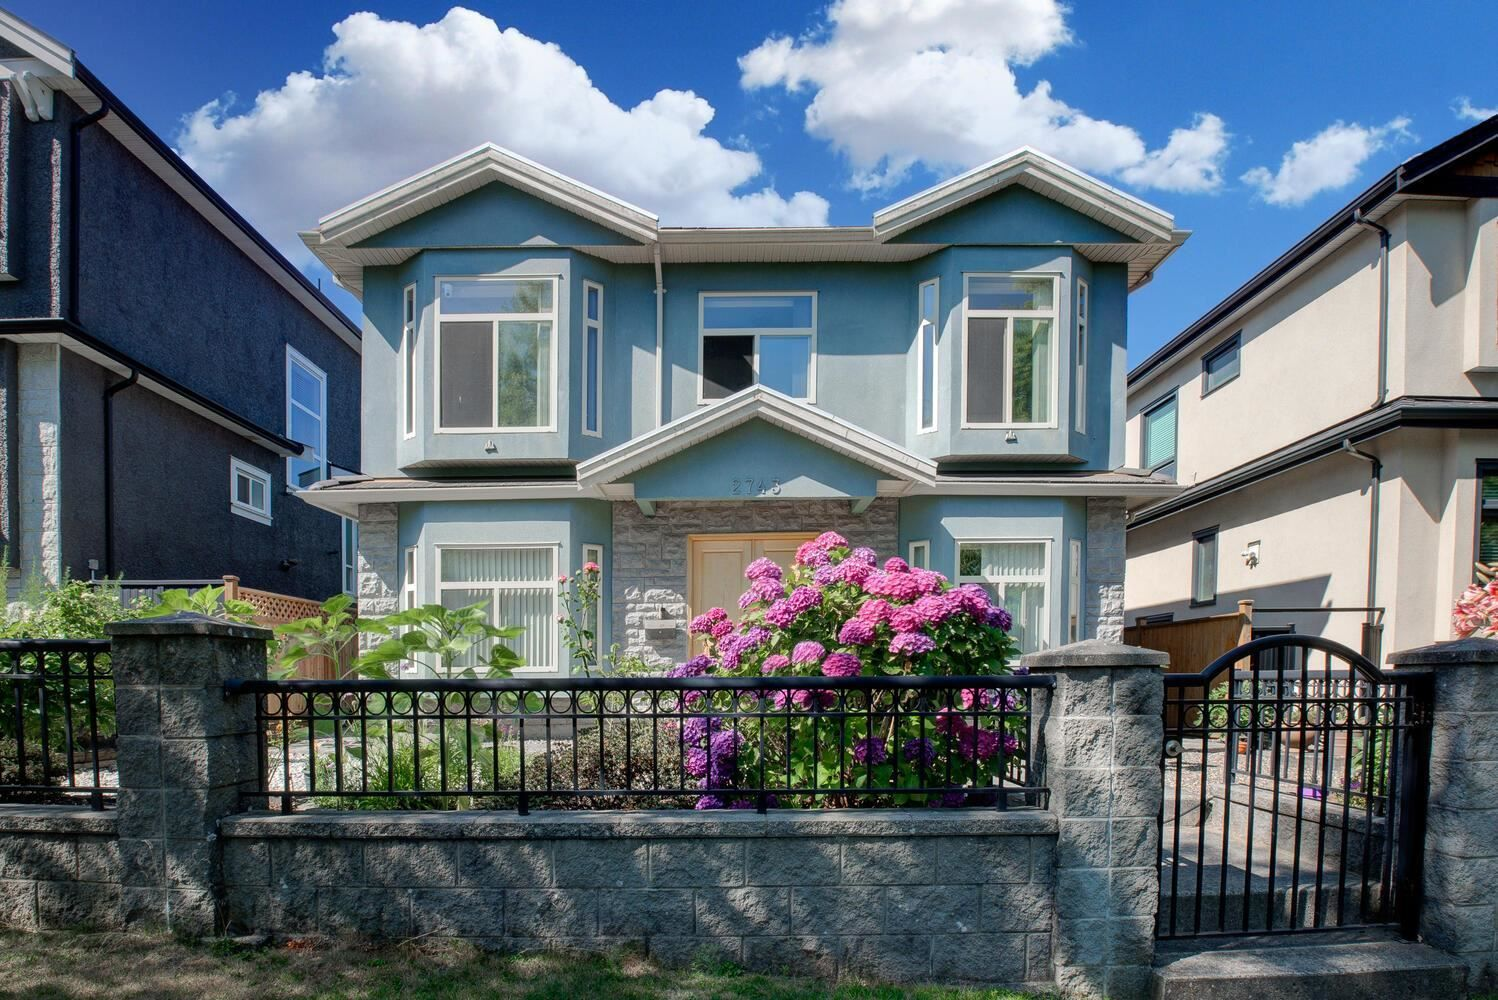 Main Photo: 2743 E 53RD Avenue in Vancouver: Killarney VE House for sale (Vancouver East)  : MLS®# R2603936